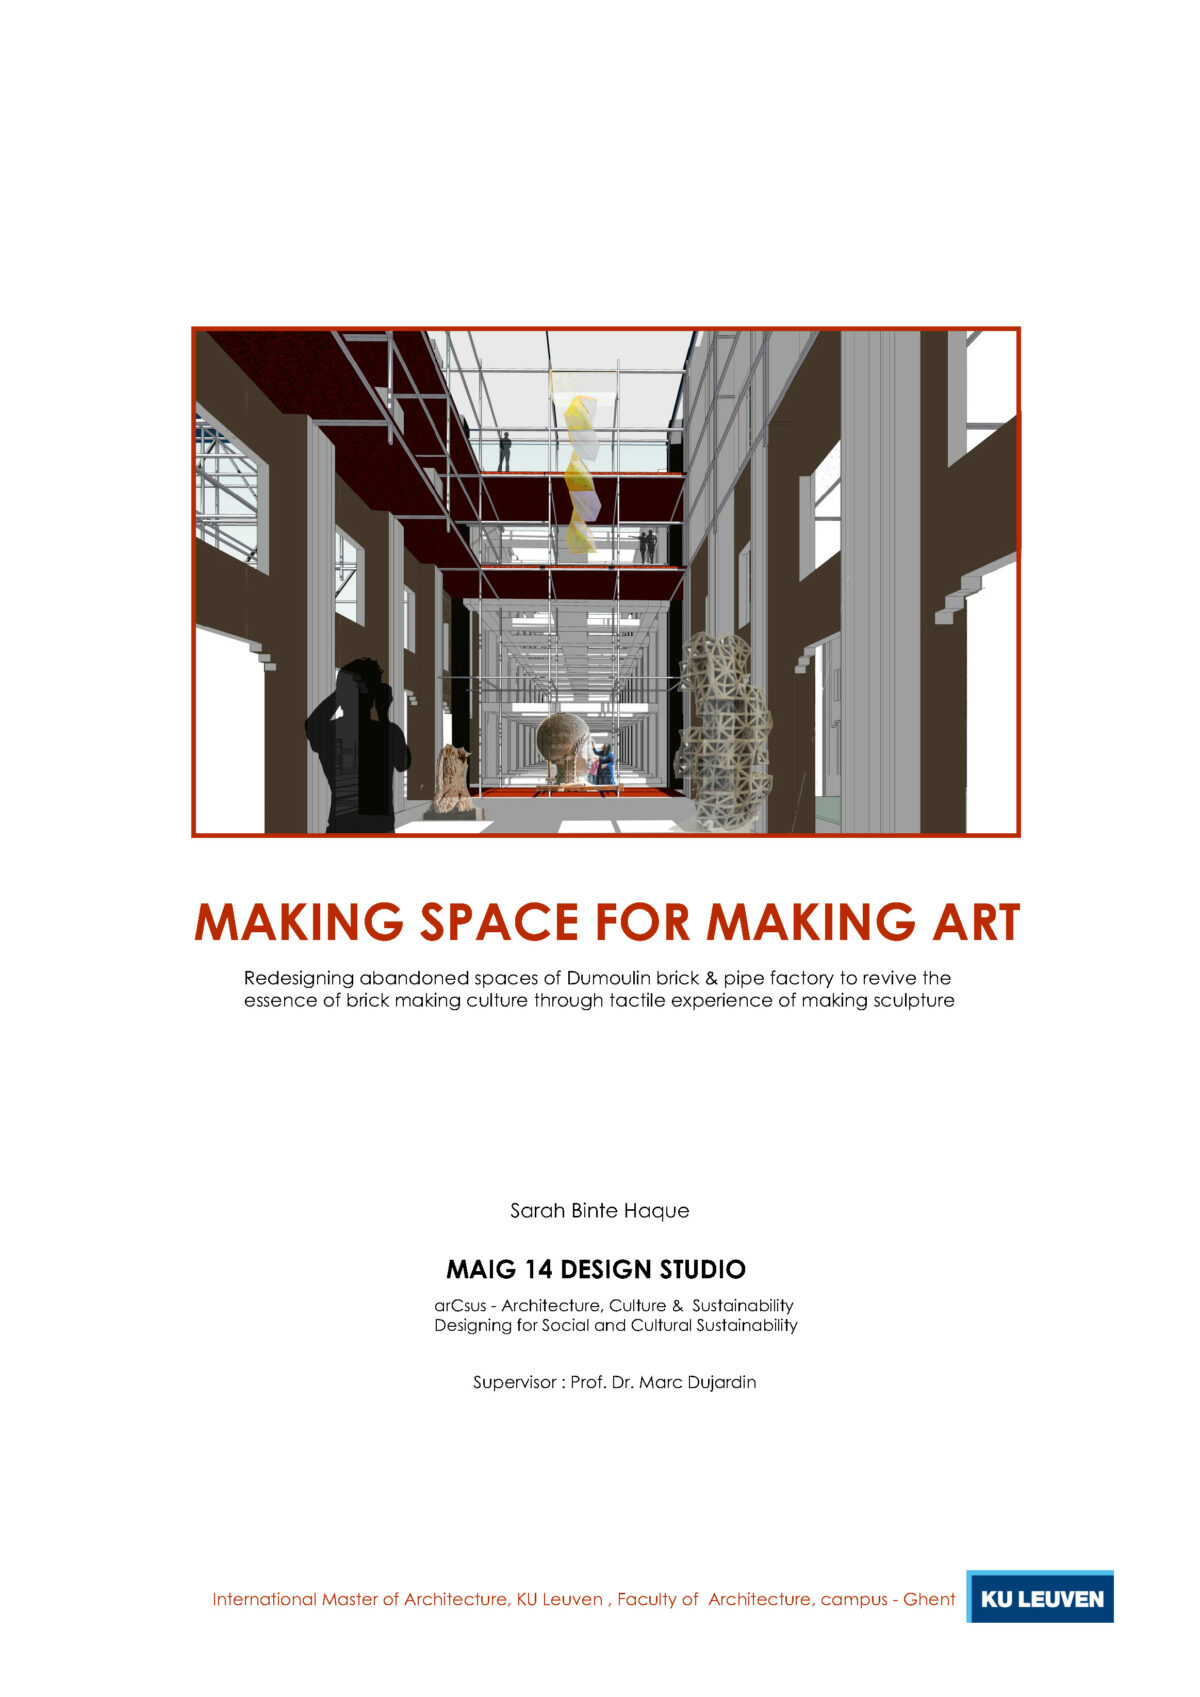 making-space-for-making-art-sae-leporello-maig14-2019-2020-1